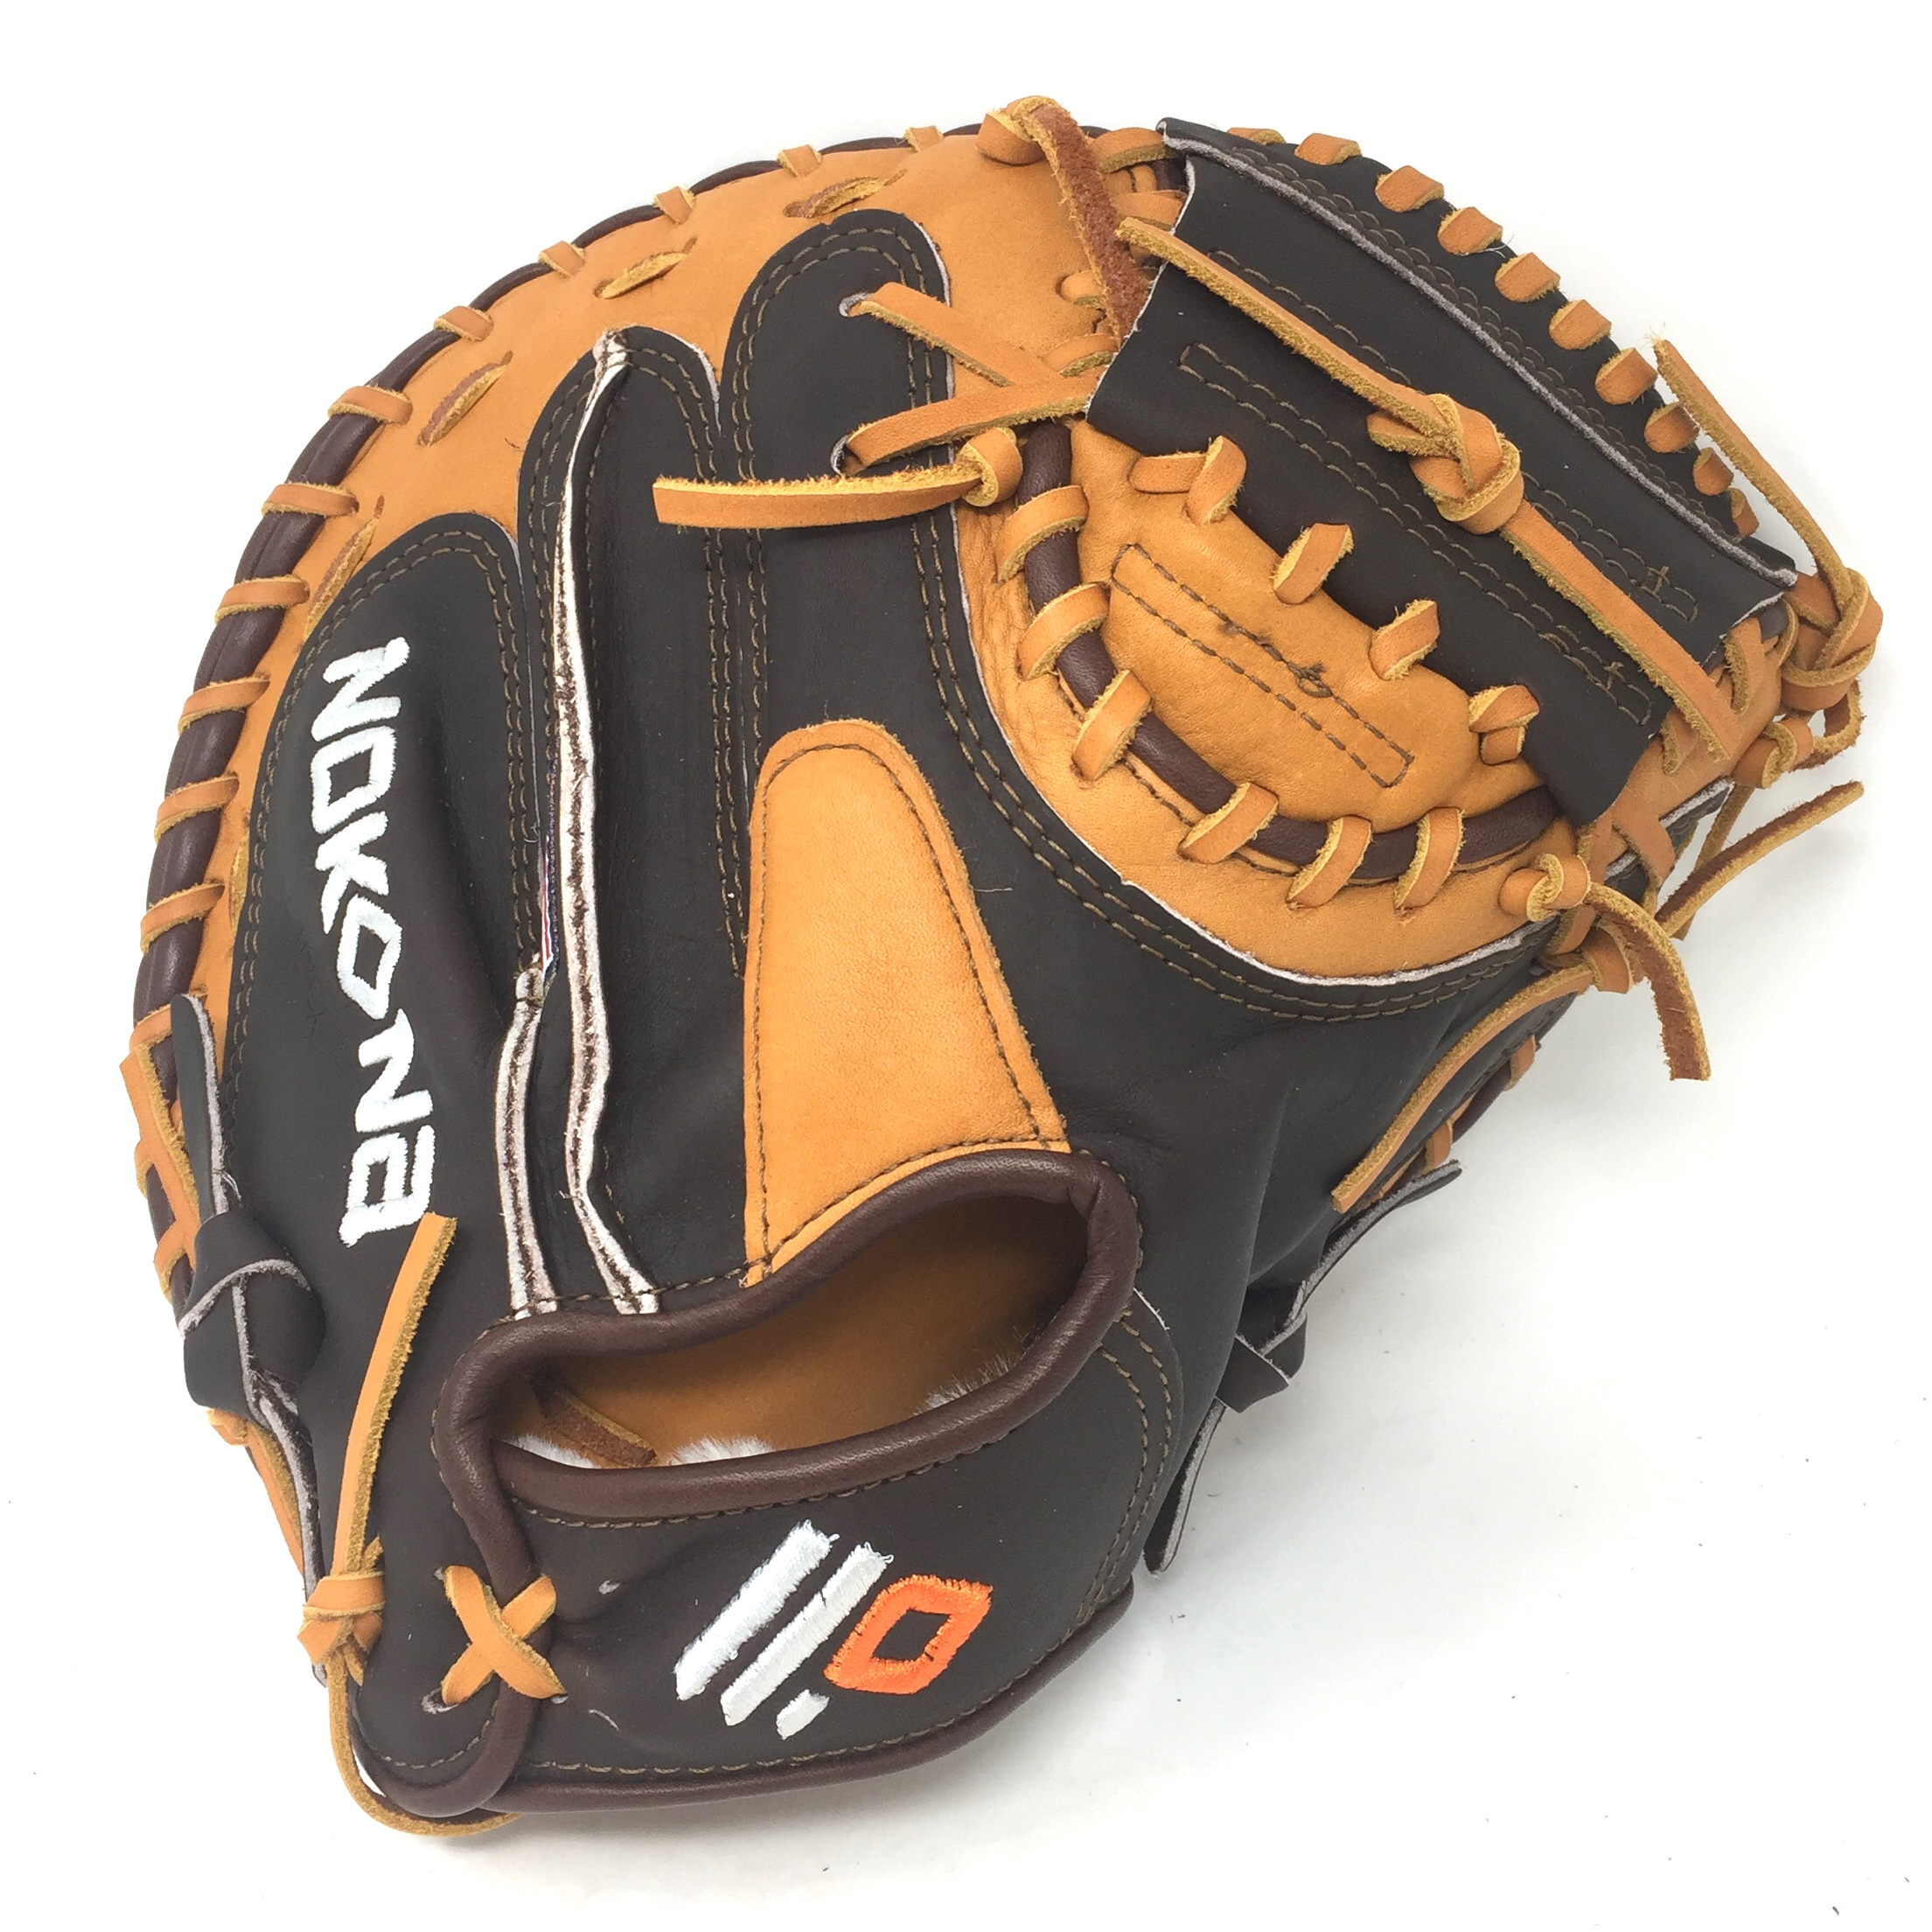 nokona-alpha-2020-youth-catchers-mitt-32-inch-right-hand-throw S-2C-2020-RightHandThrow Nokona 808808894049 The Alpha series is created with virtually no break in needed